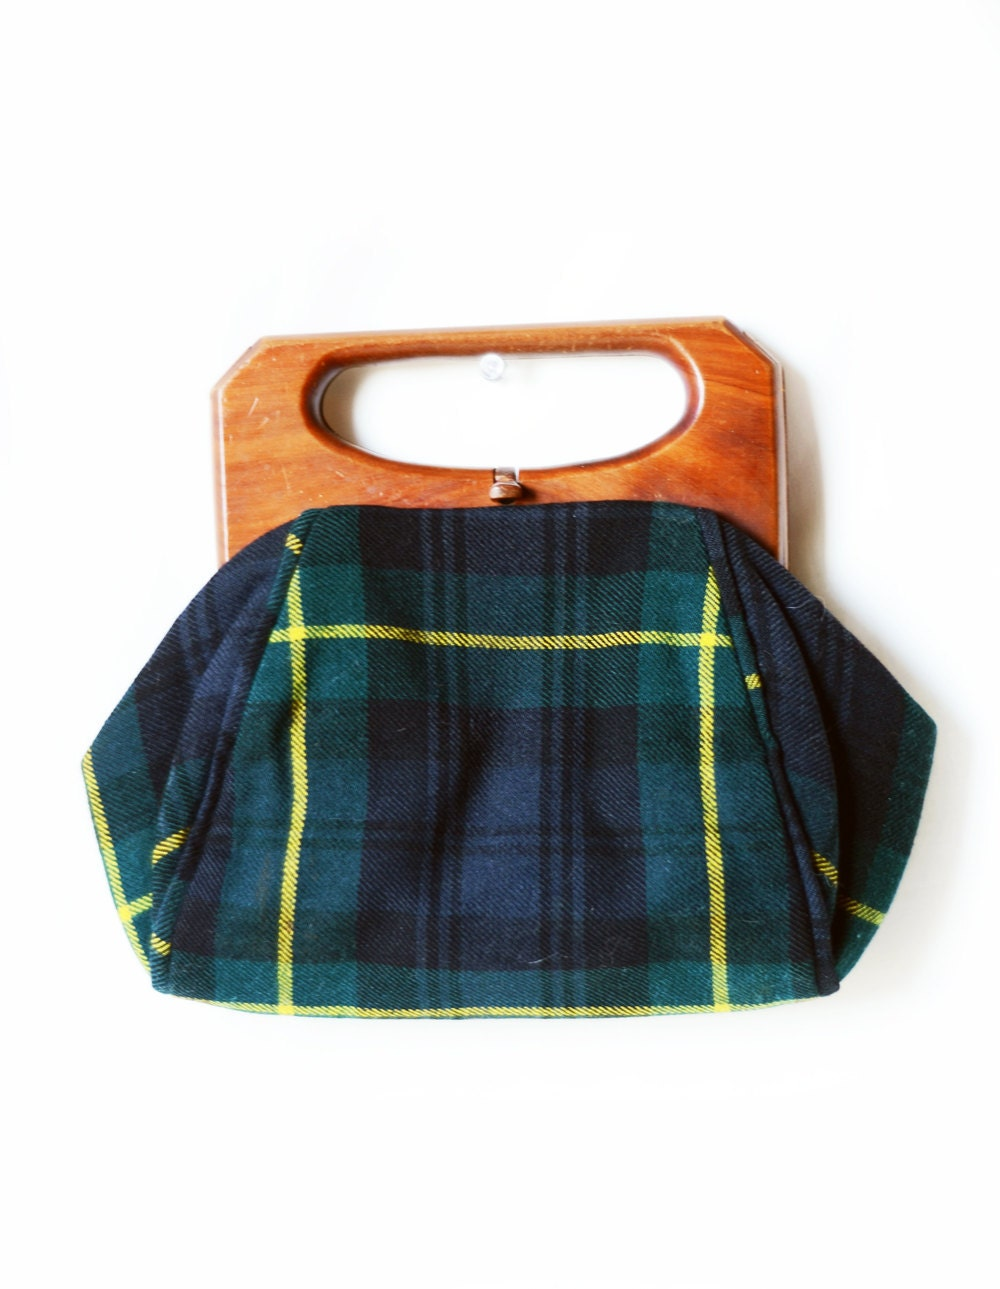 Vintage Tartan Plaid and Wood Purse